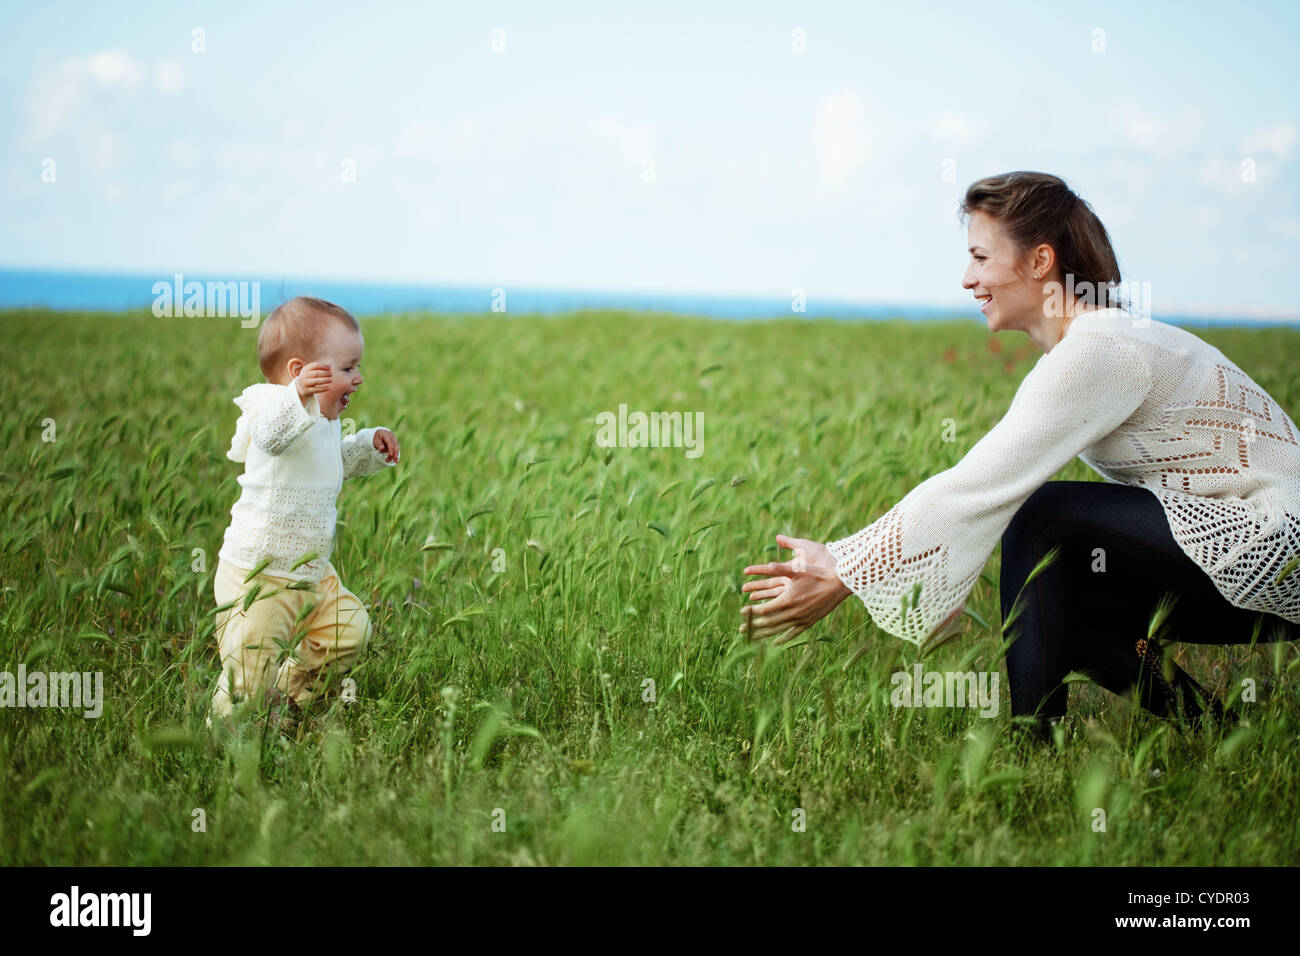 Female Toddler Running In Field Stock Photos   Female Toddler ... fb65bd18c527